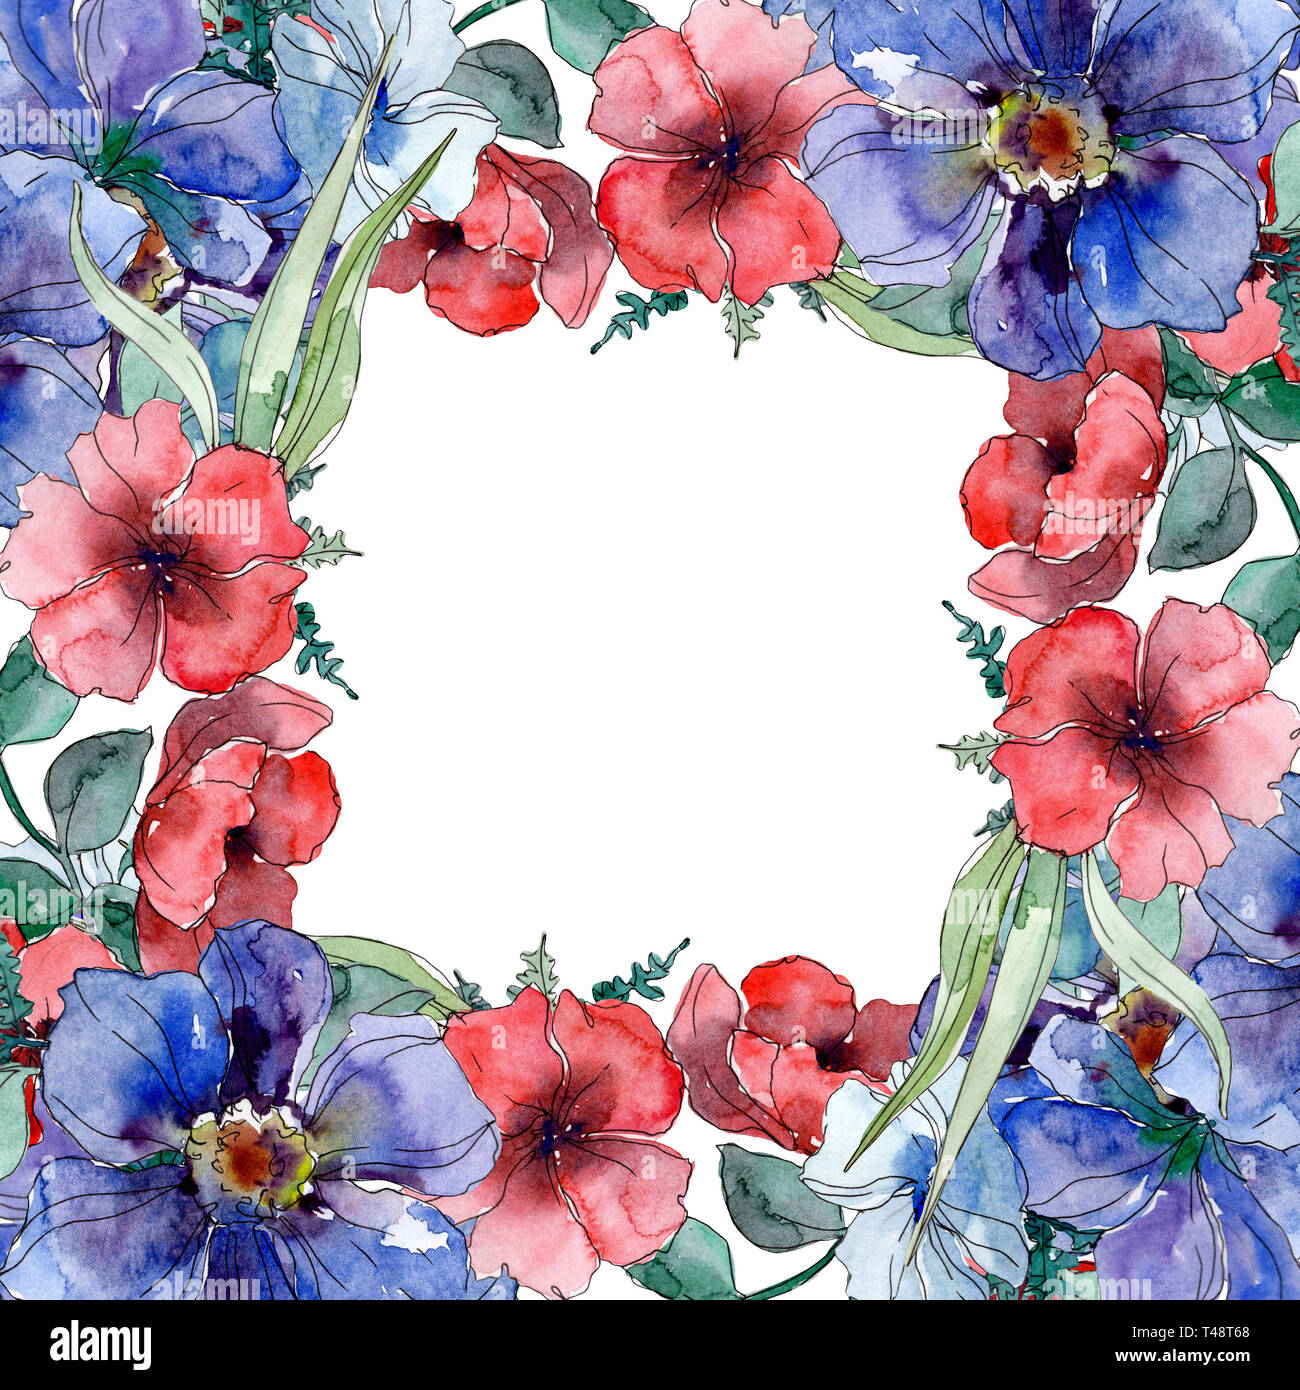 Wildflower Bouquet Botanical Flowers Watercolor Background Illustration Set Frame Border Crystal Ornament Square Stock Photo Alamy